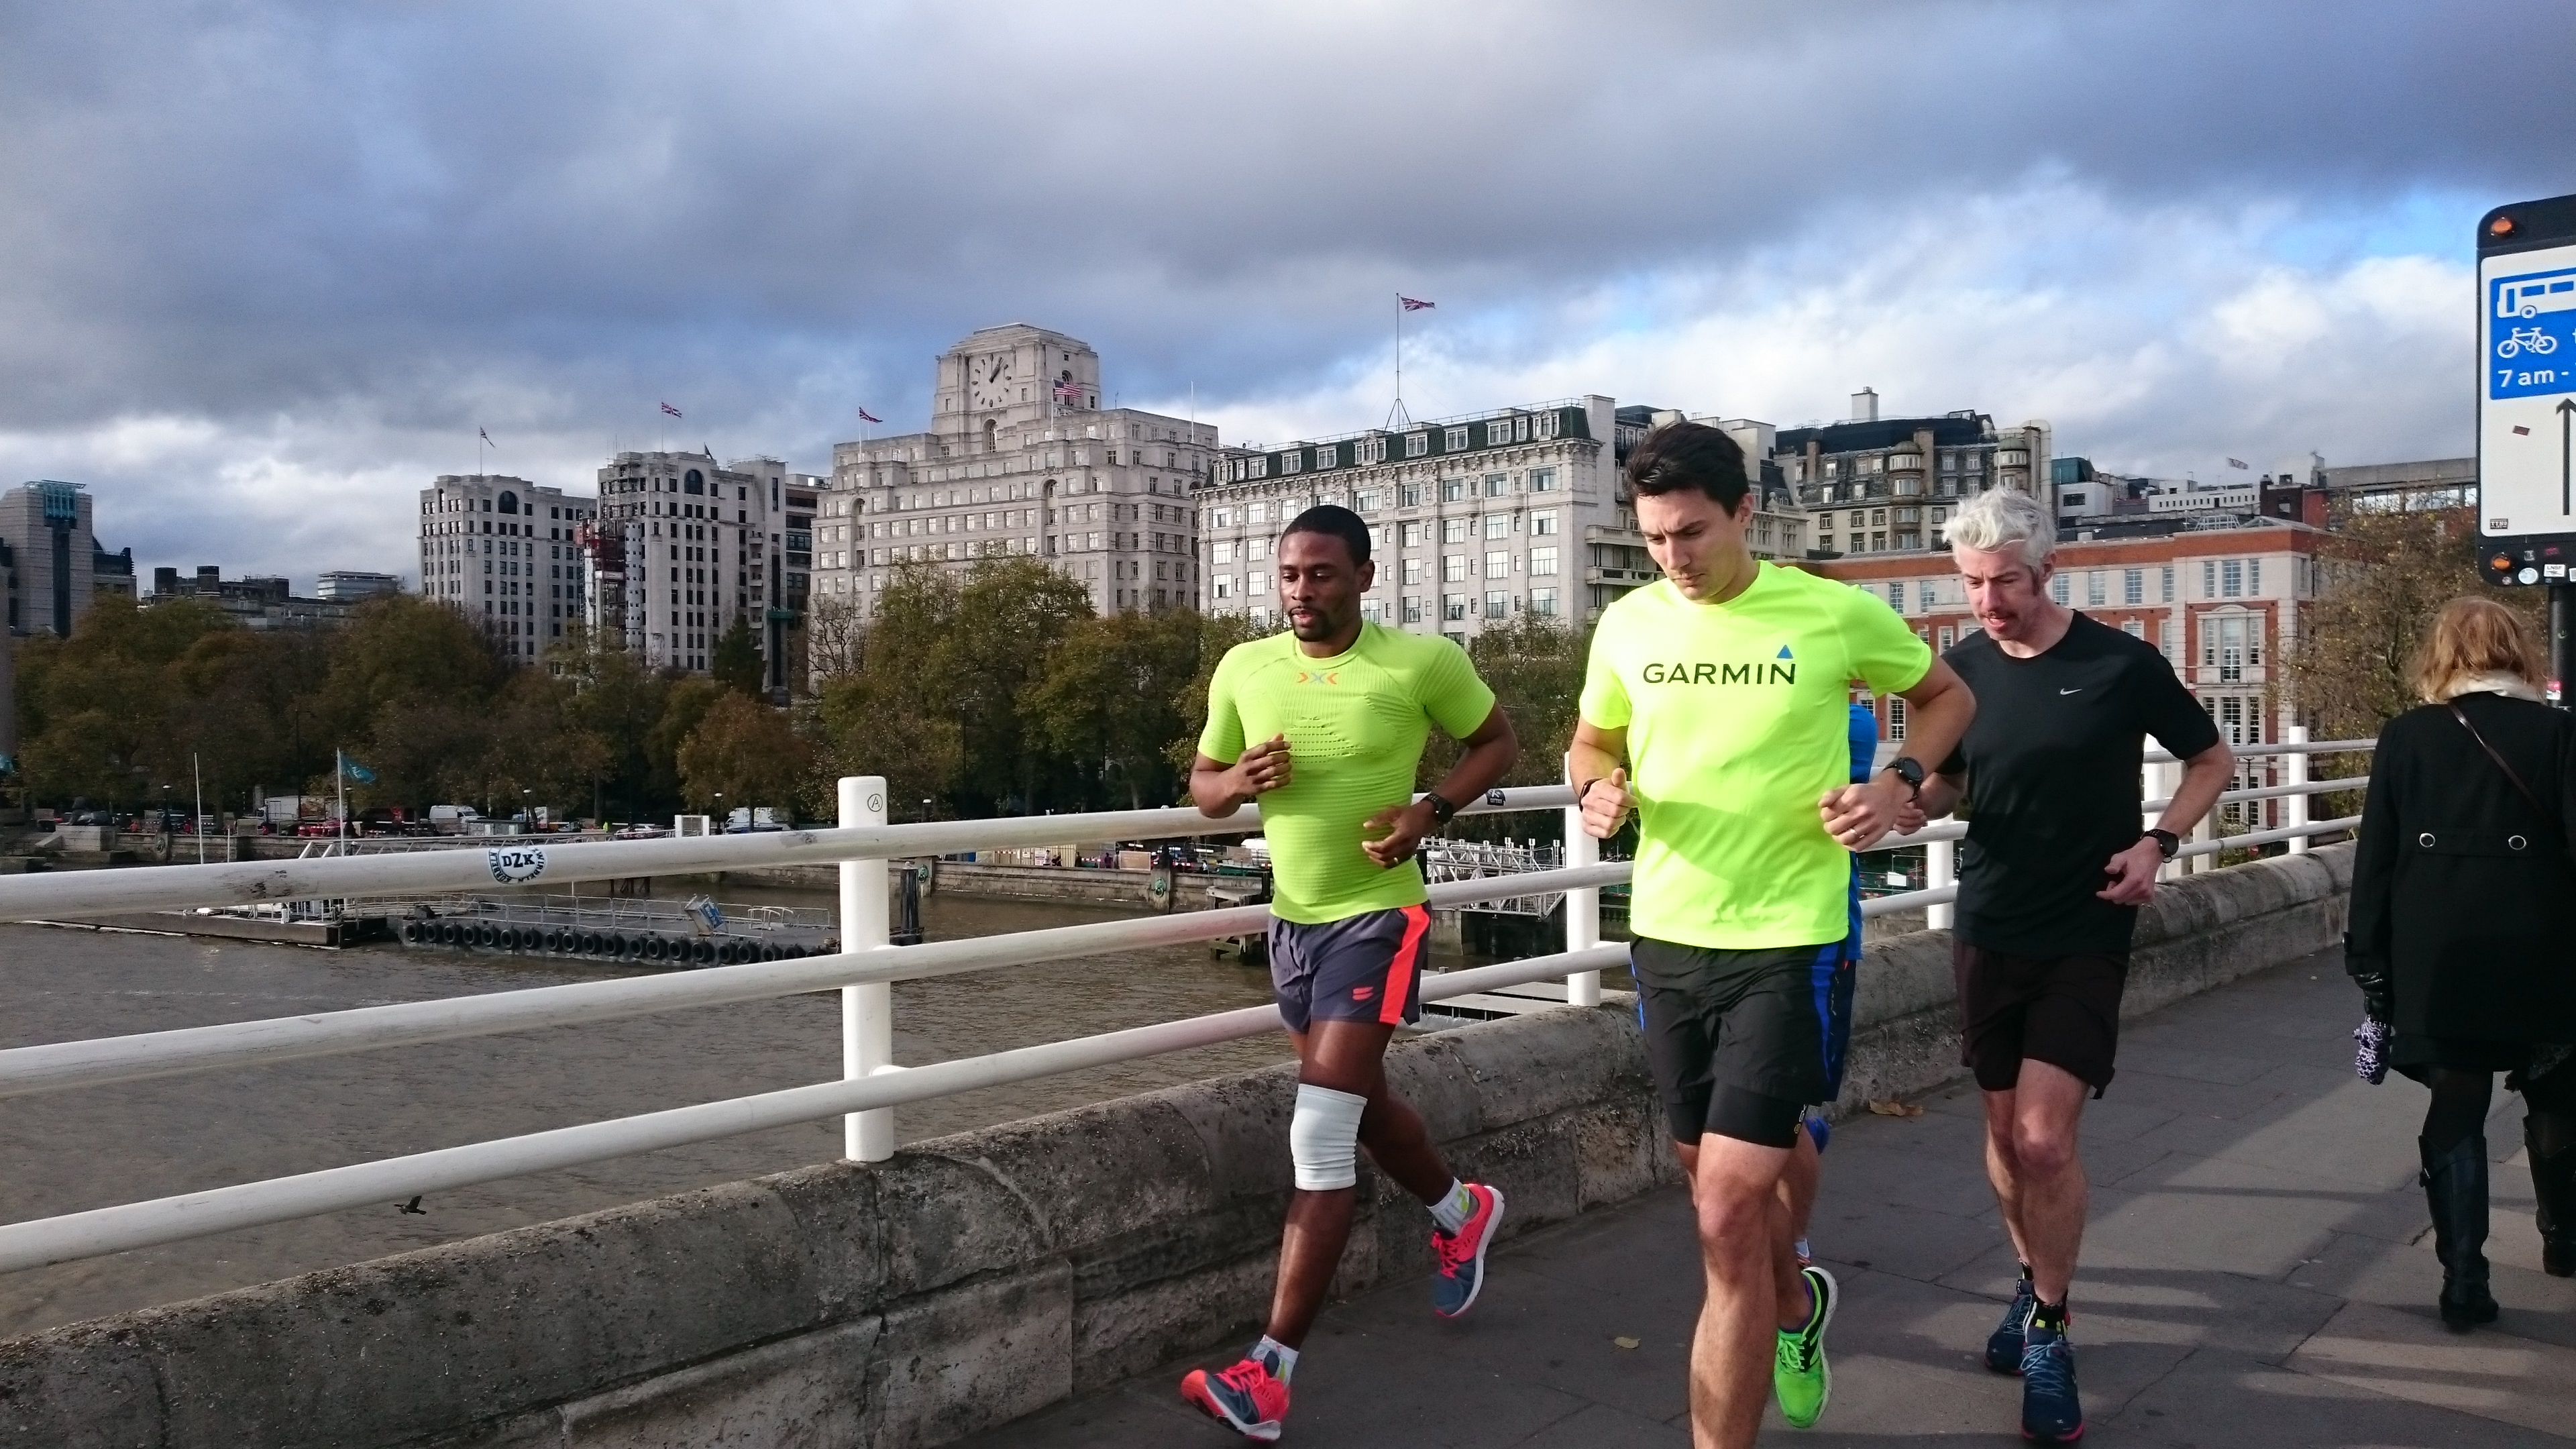 Running + Runners Need Review + Garmin Watch + Test + London